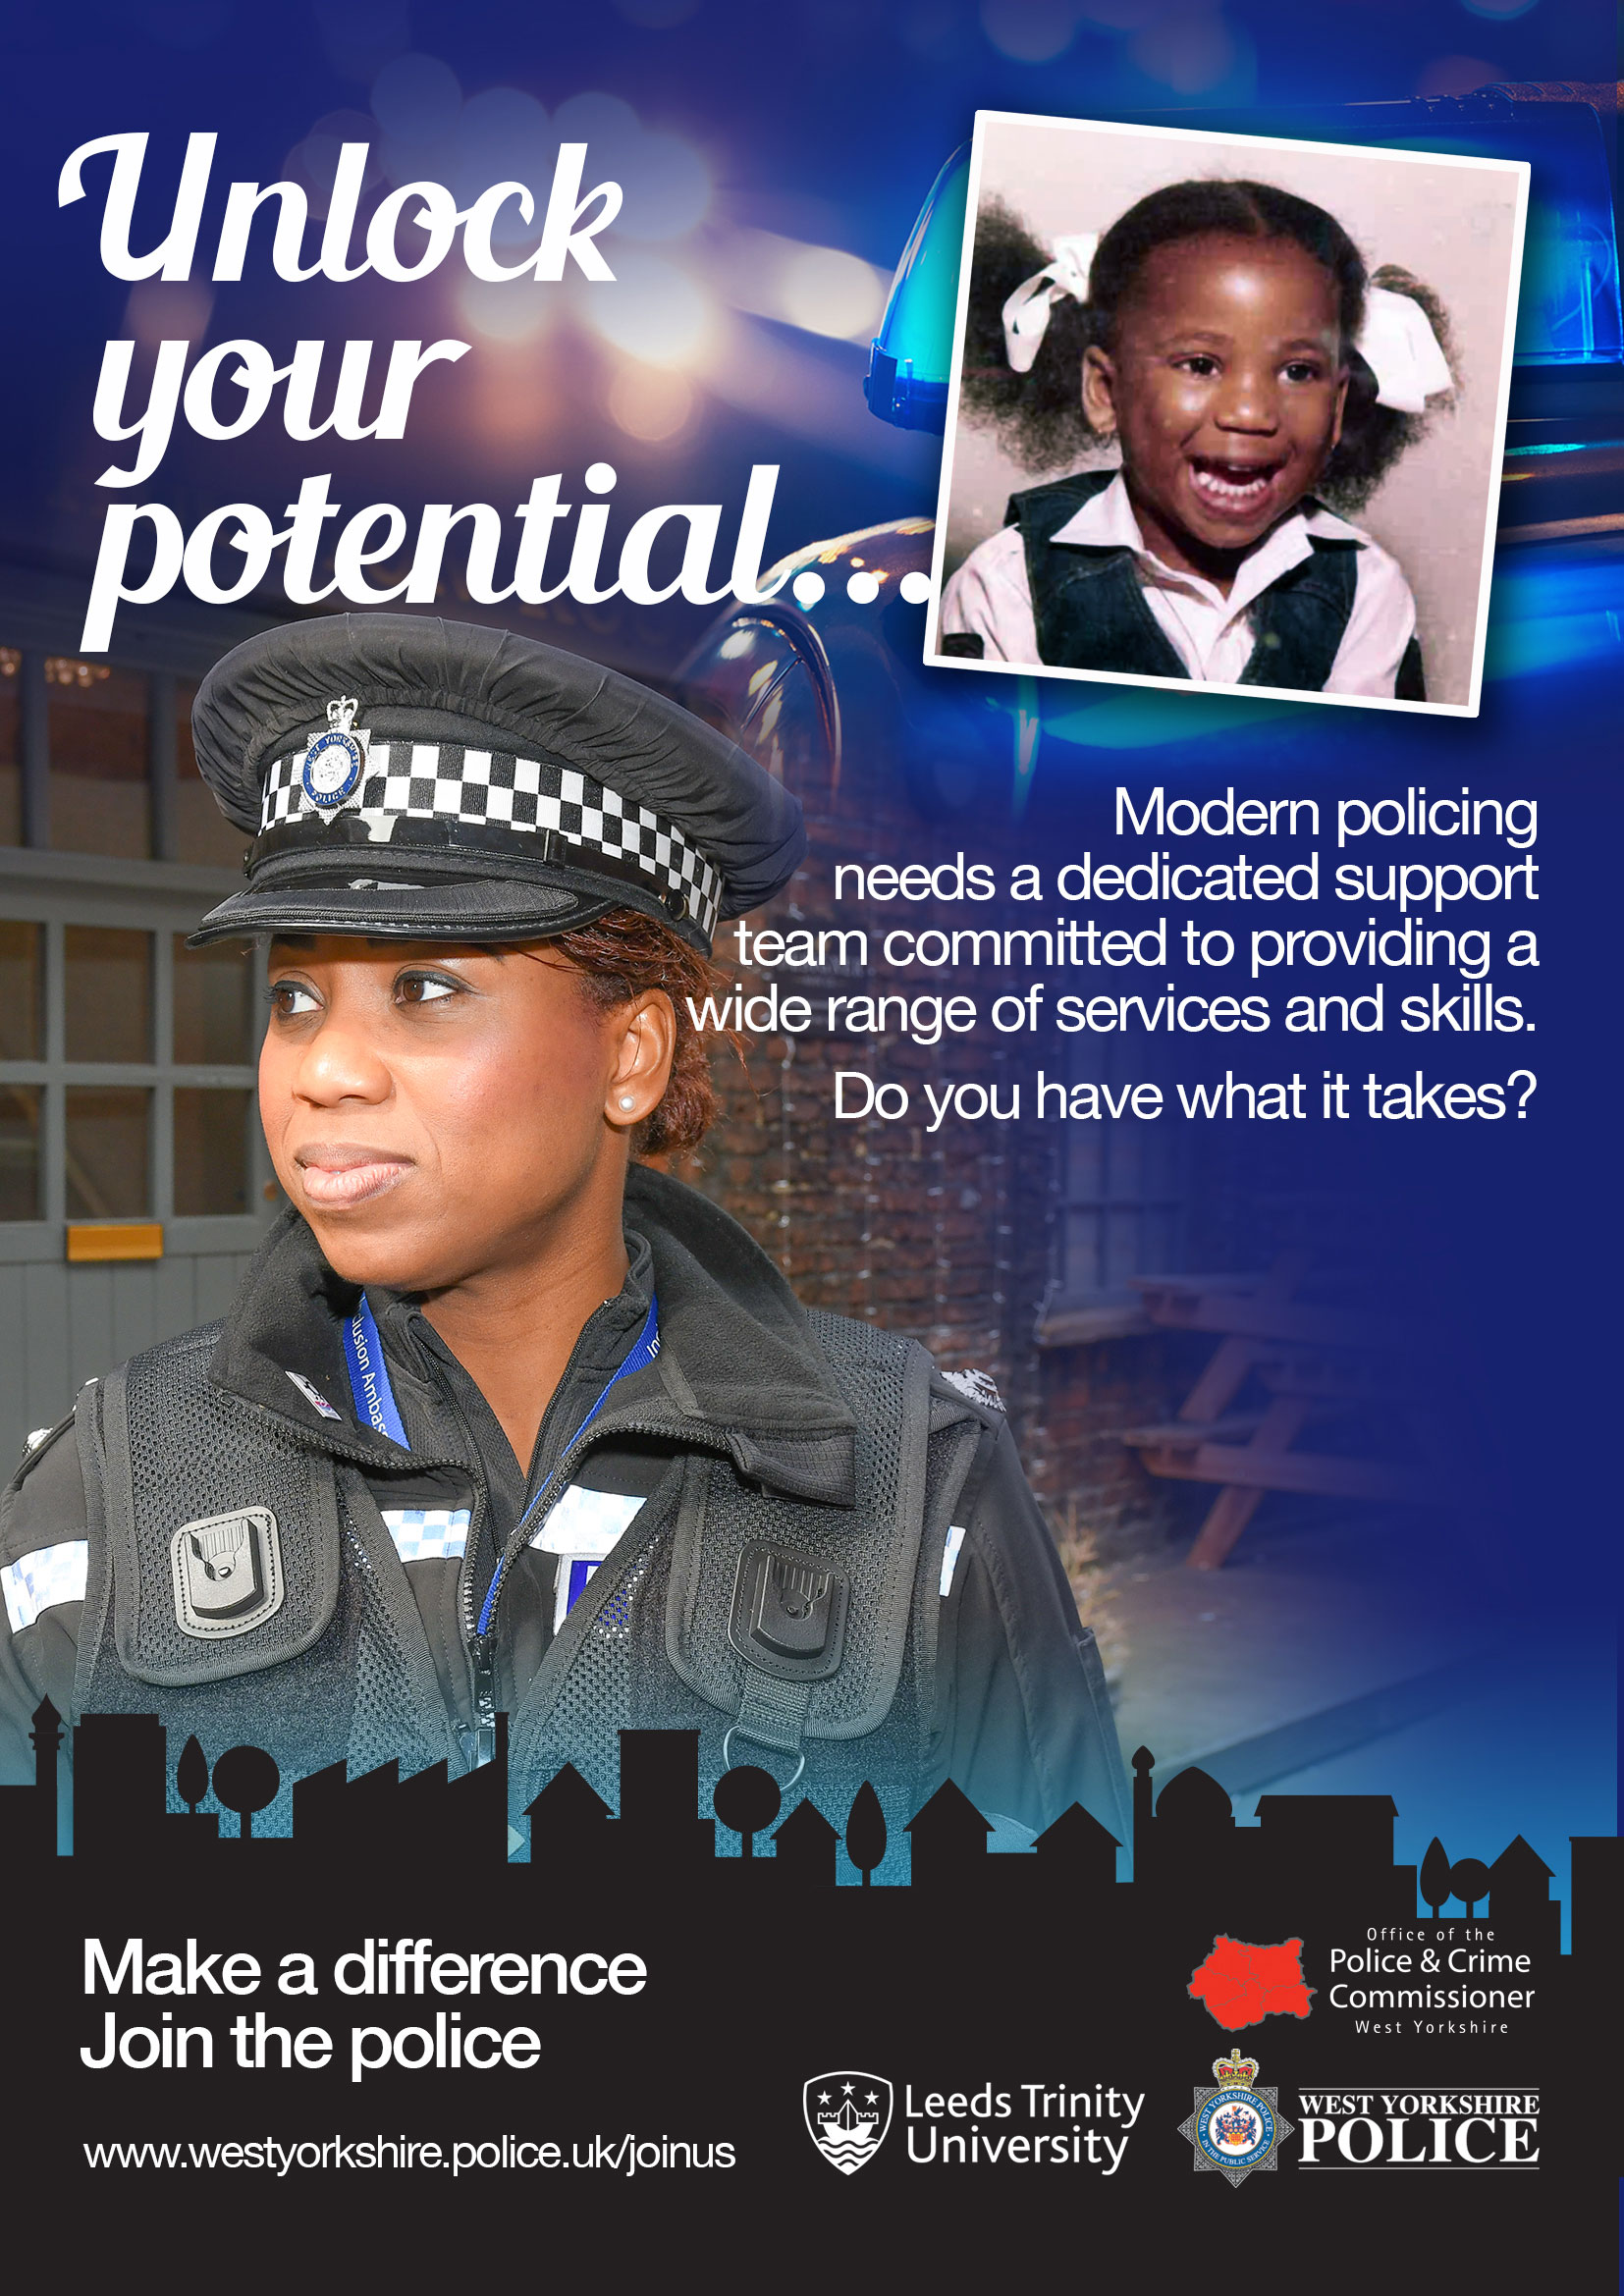 Chief Inspector Tanya Wilkins